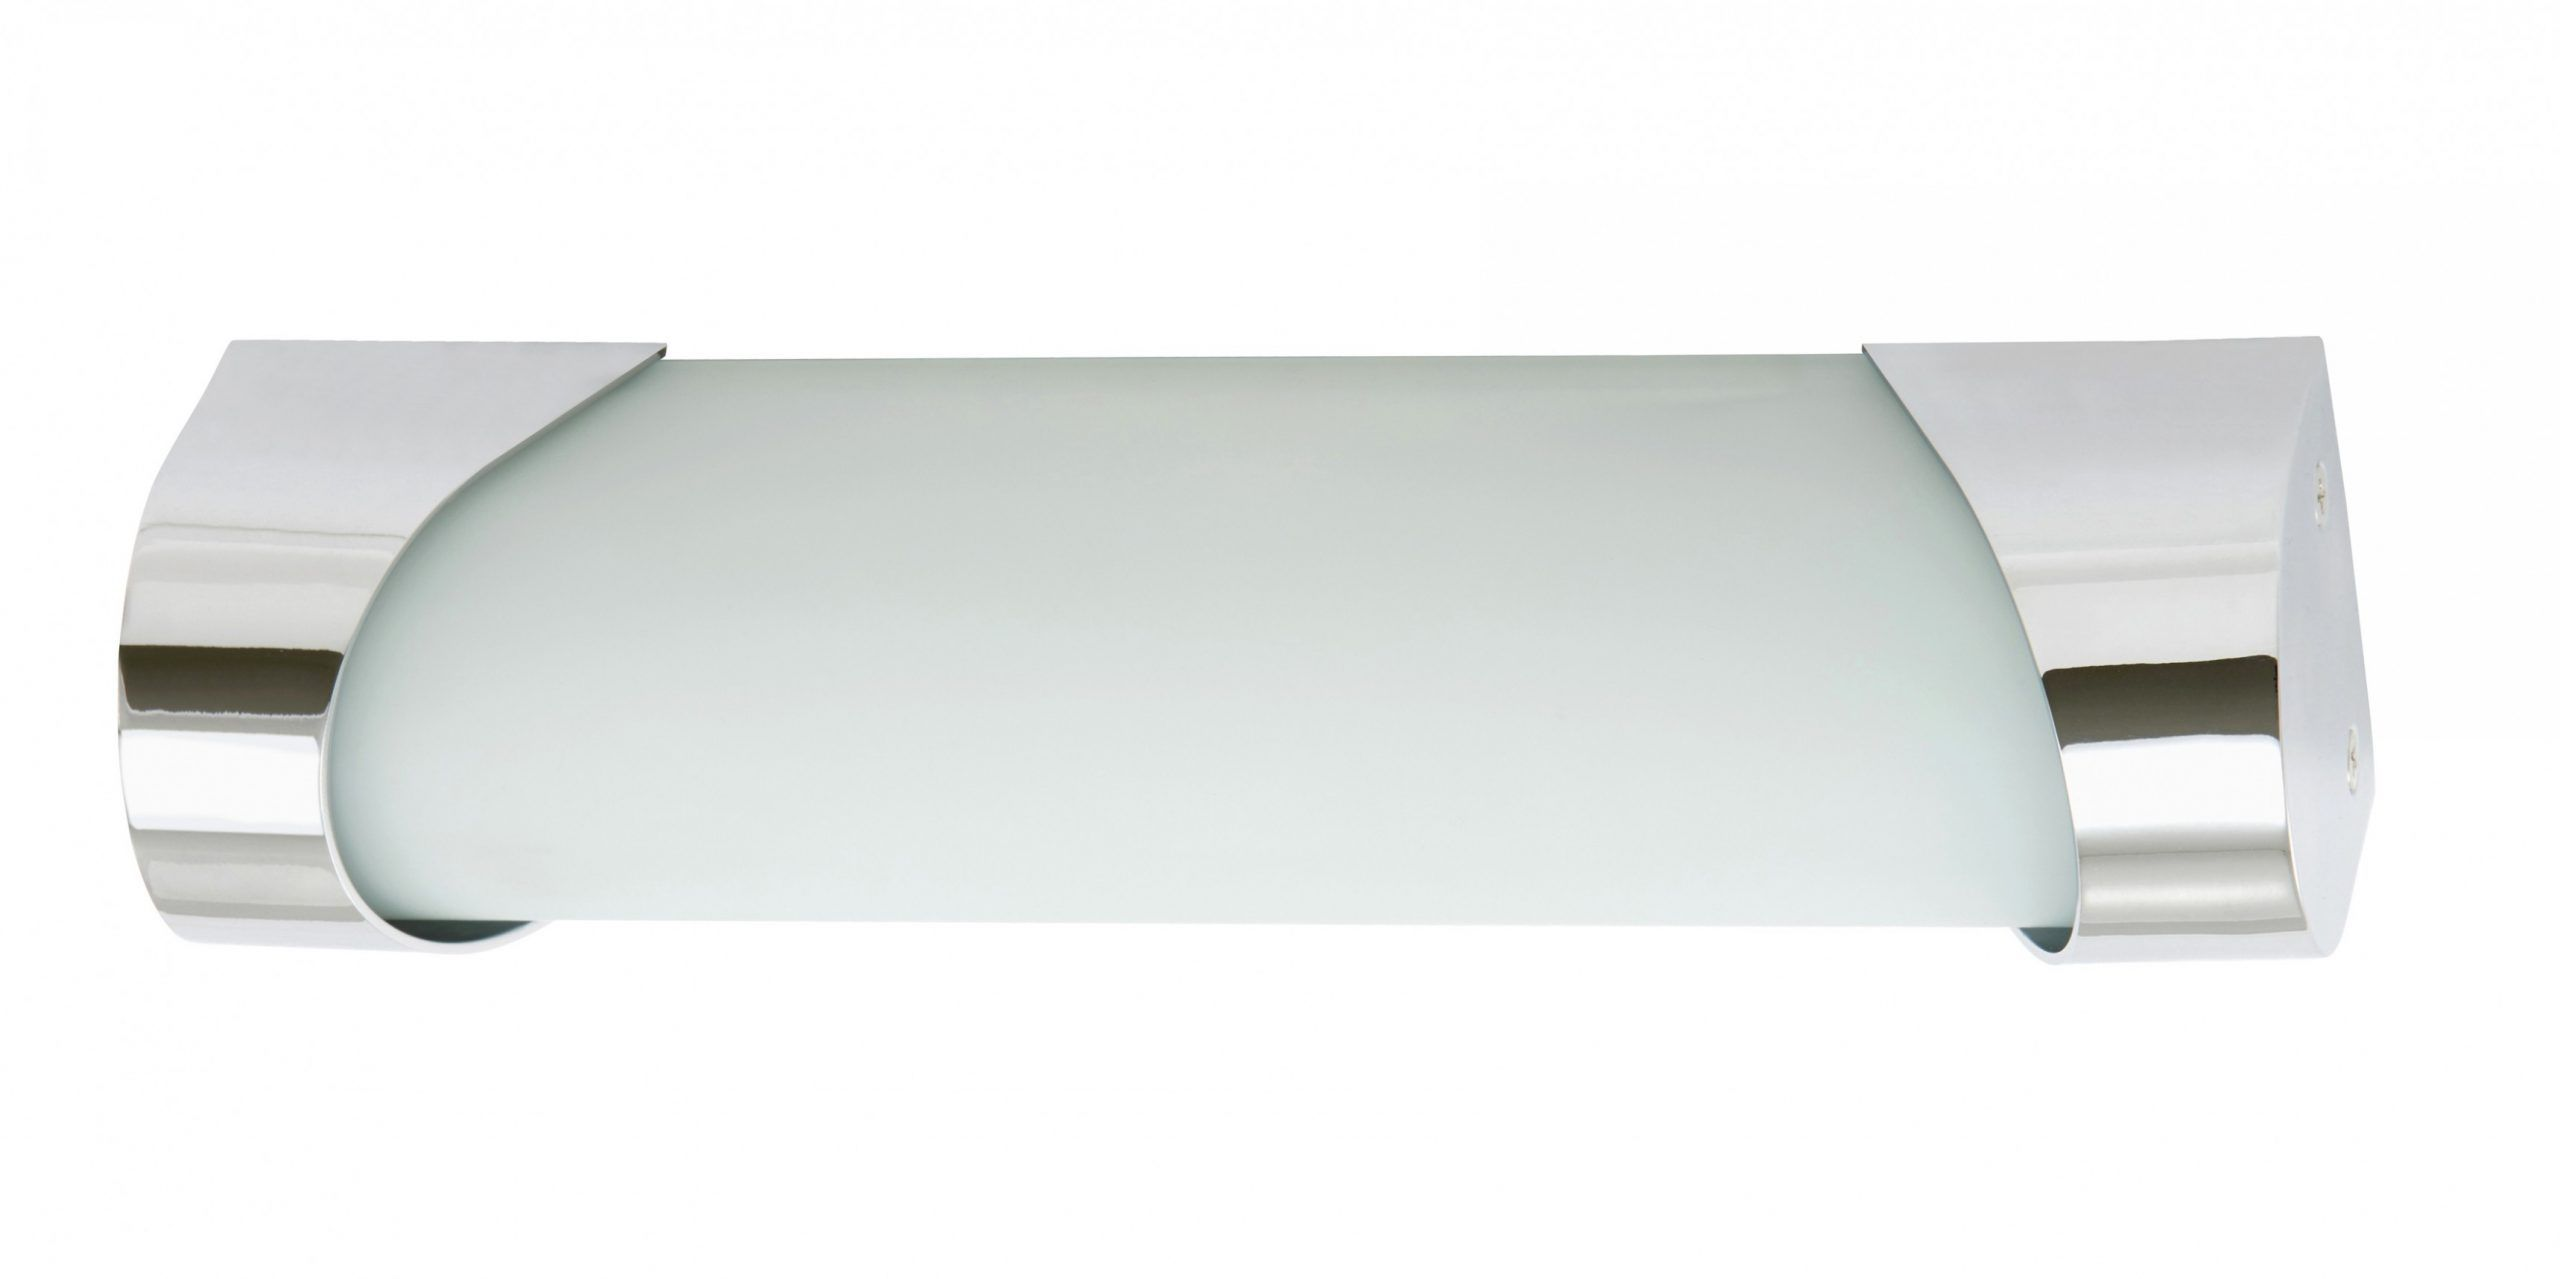 12 Ostermann Arbeits Lampe